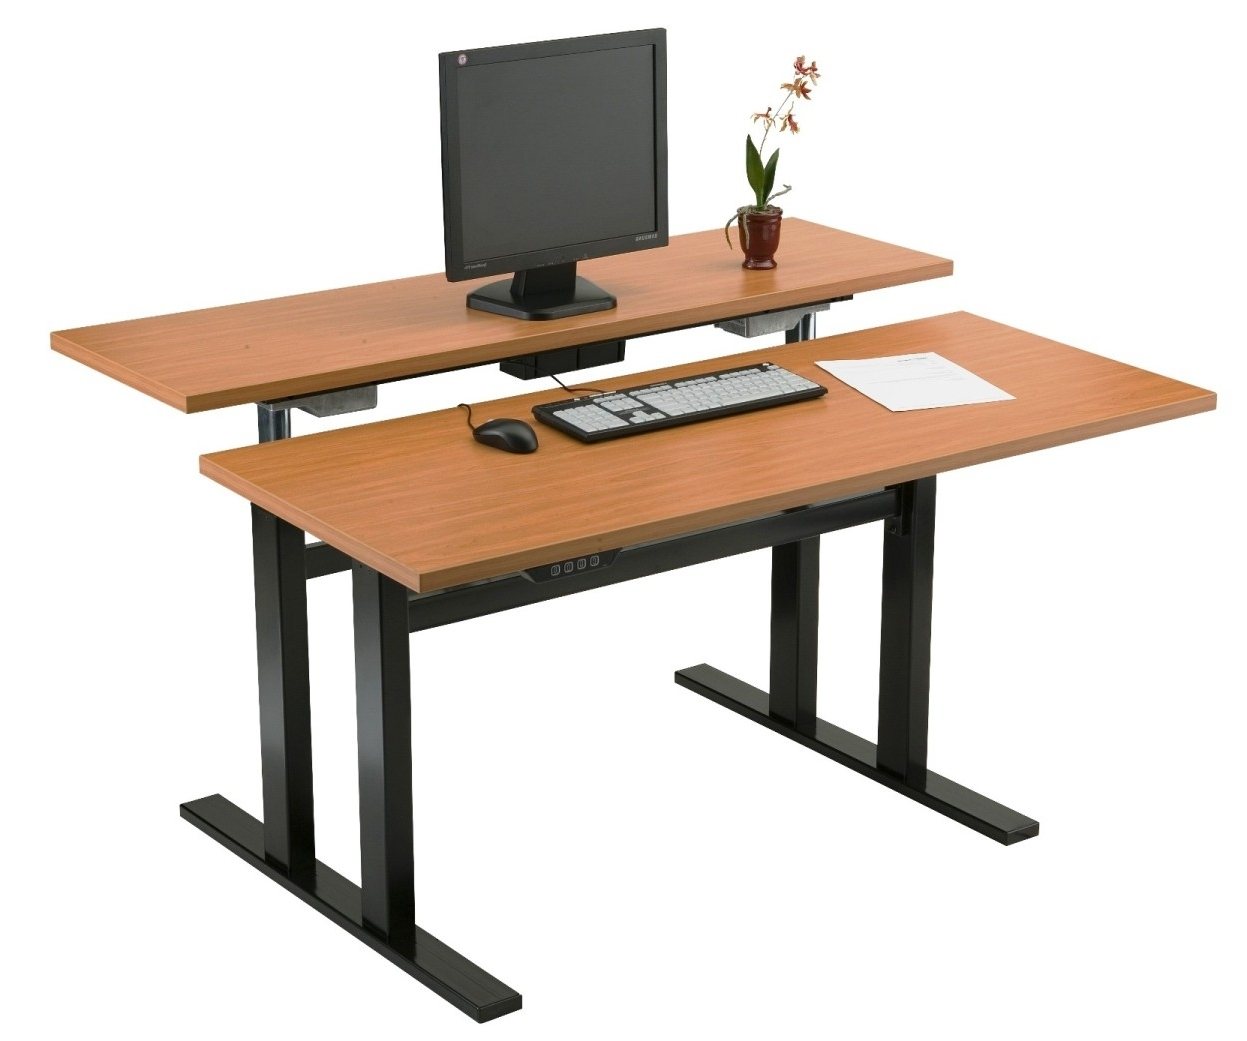 Most Popular Ergonomic Computer Desks Pertaining To Mobile Adjustable Height Computer Workstation With Caster Wheels (View 19 of 20)